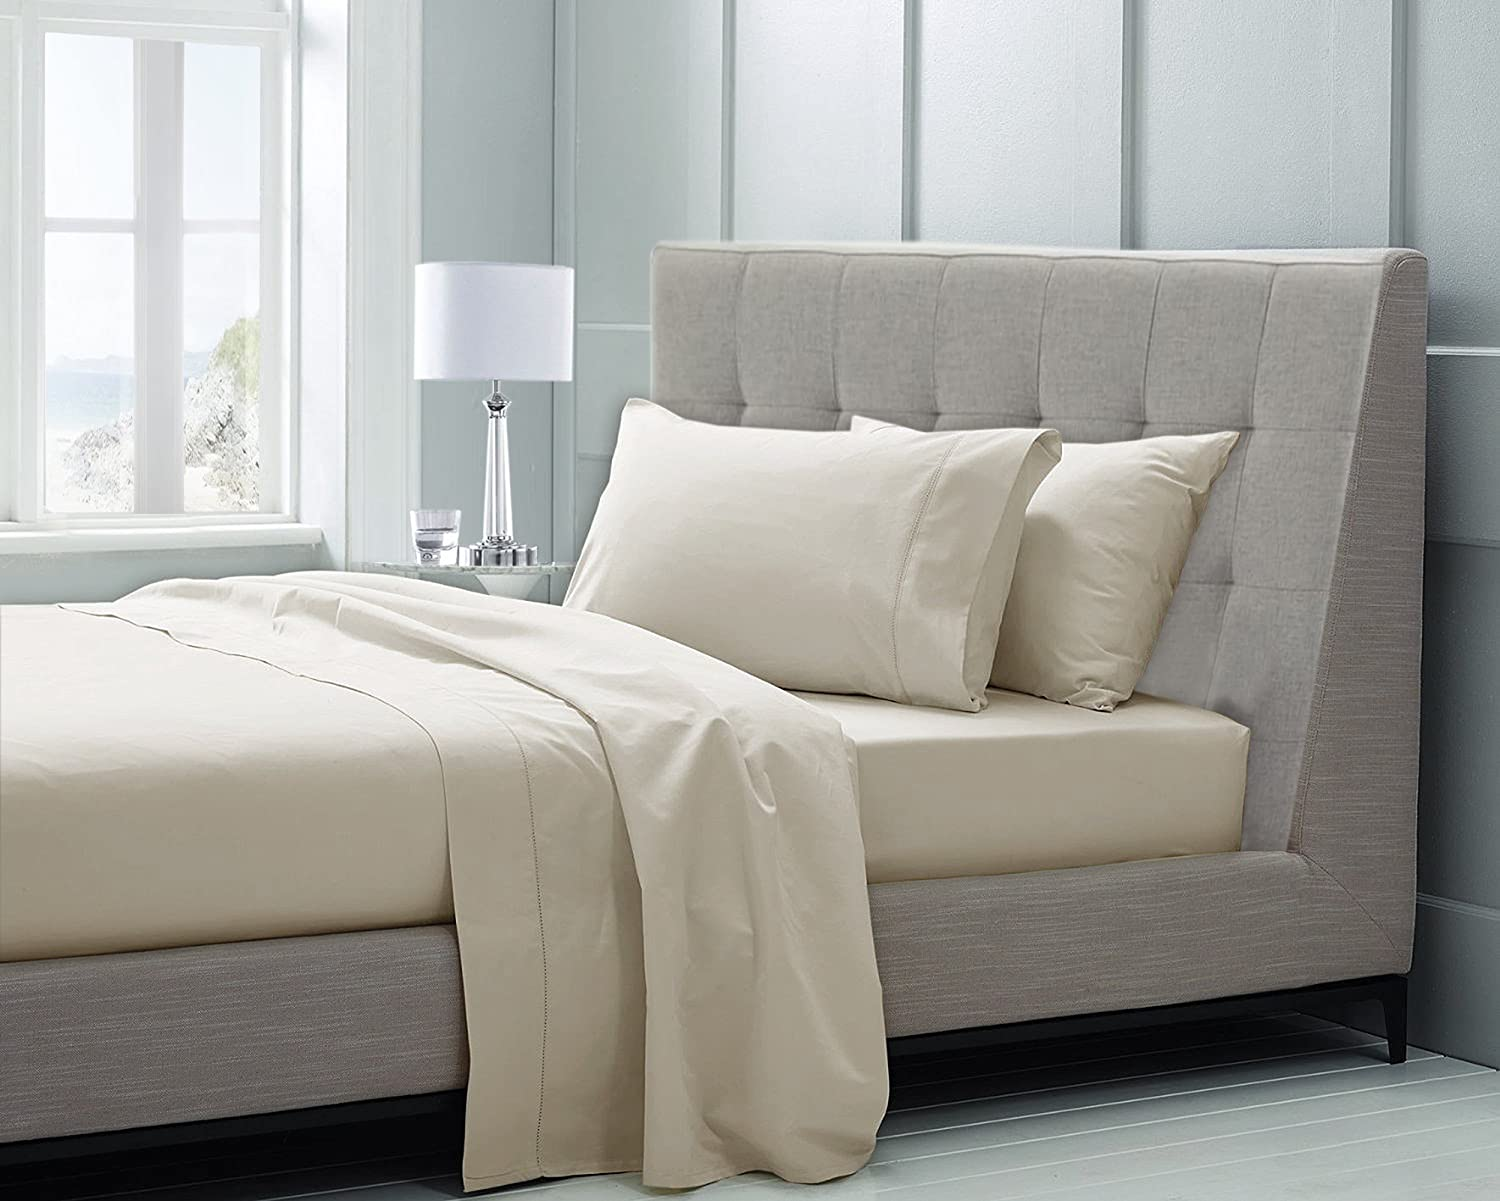 Amazon.com: Chateau Home Collection Hotel Luxury 100% Supima Cotton Solid  600 Thread Count Sheet Set, Soft U0026 Silky Sateen Weave Mega Sale,  Long Staple ...